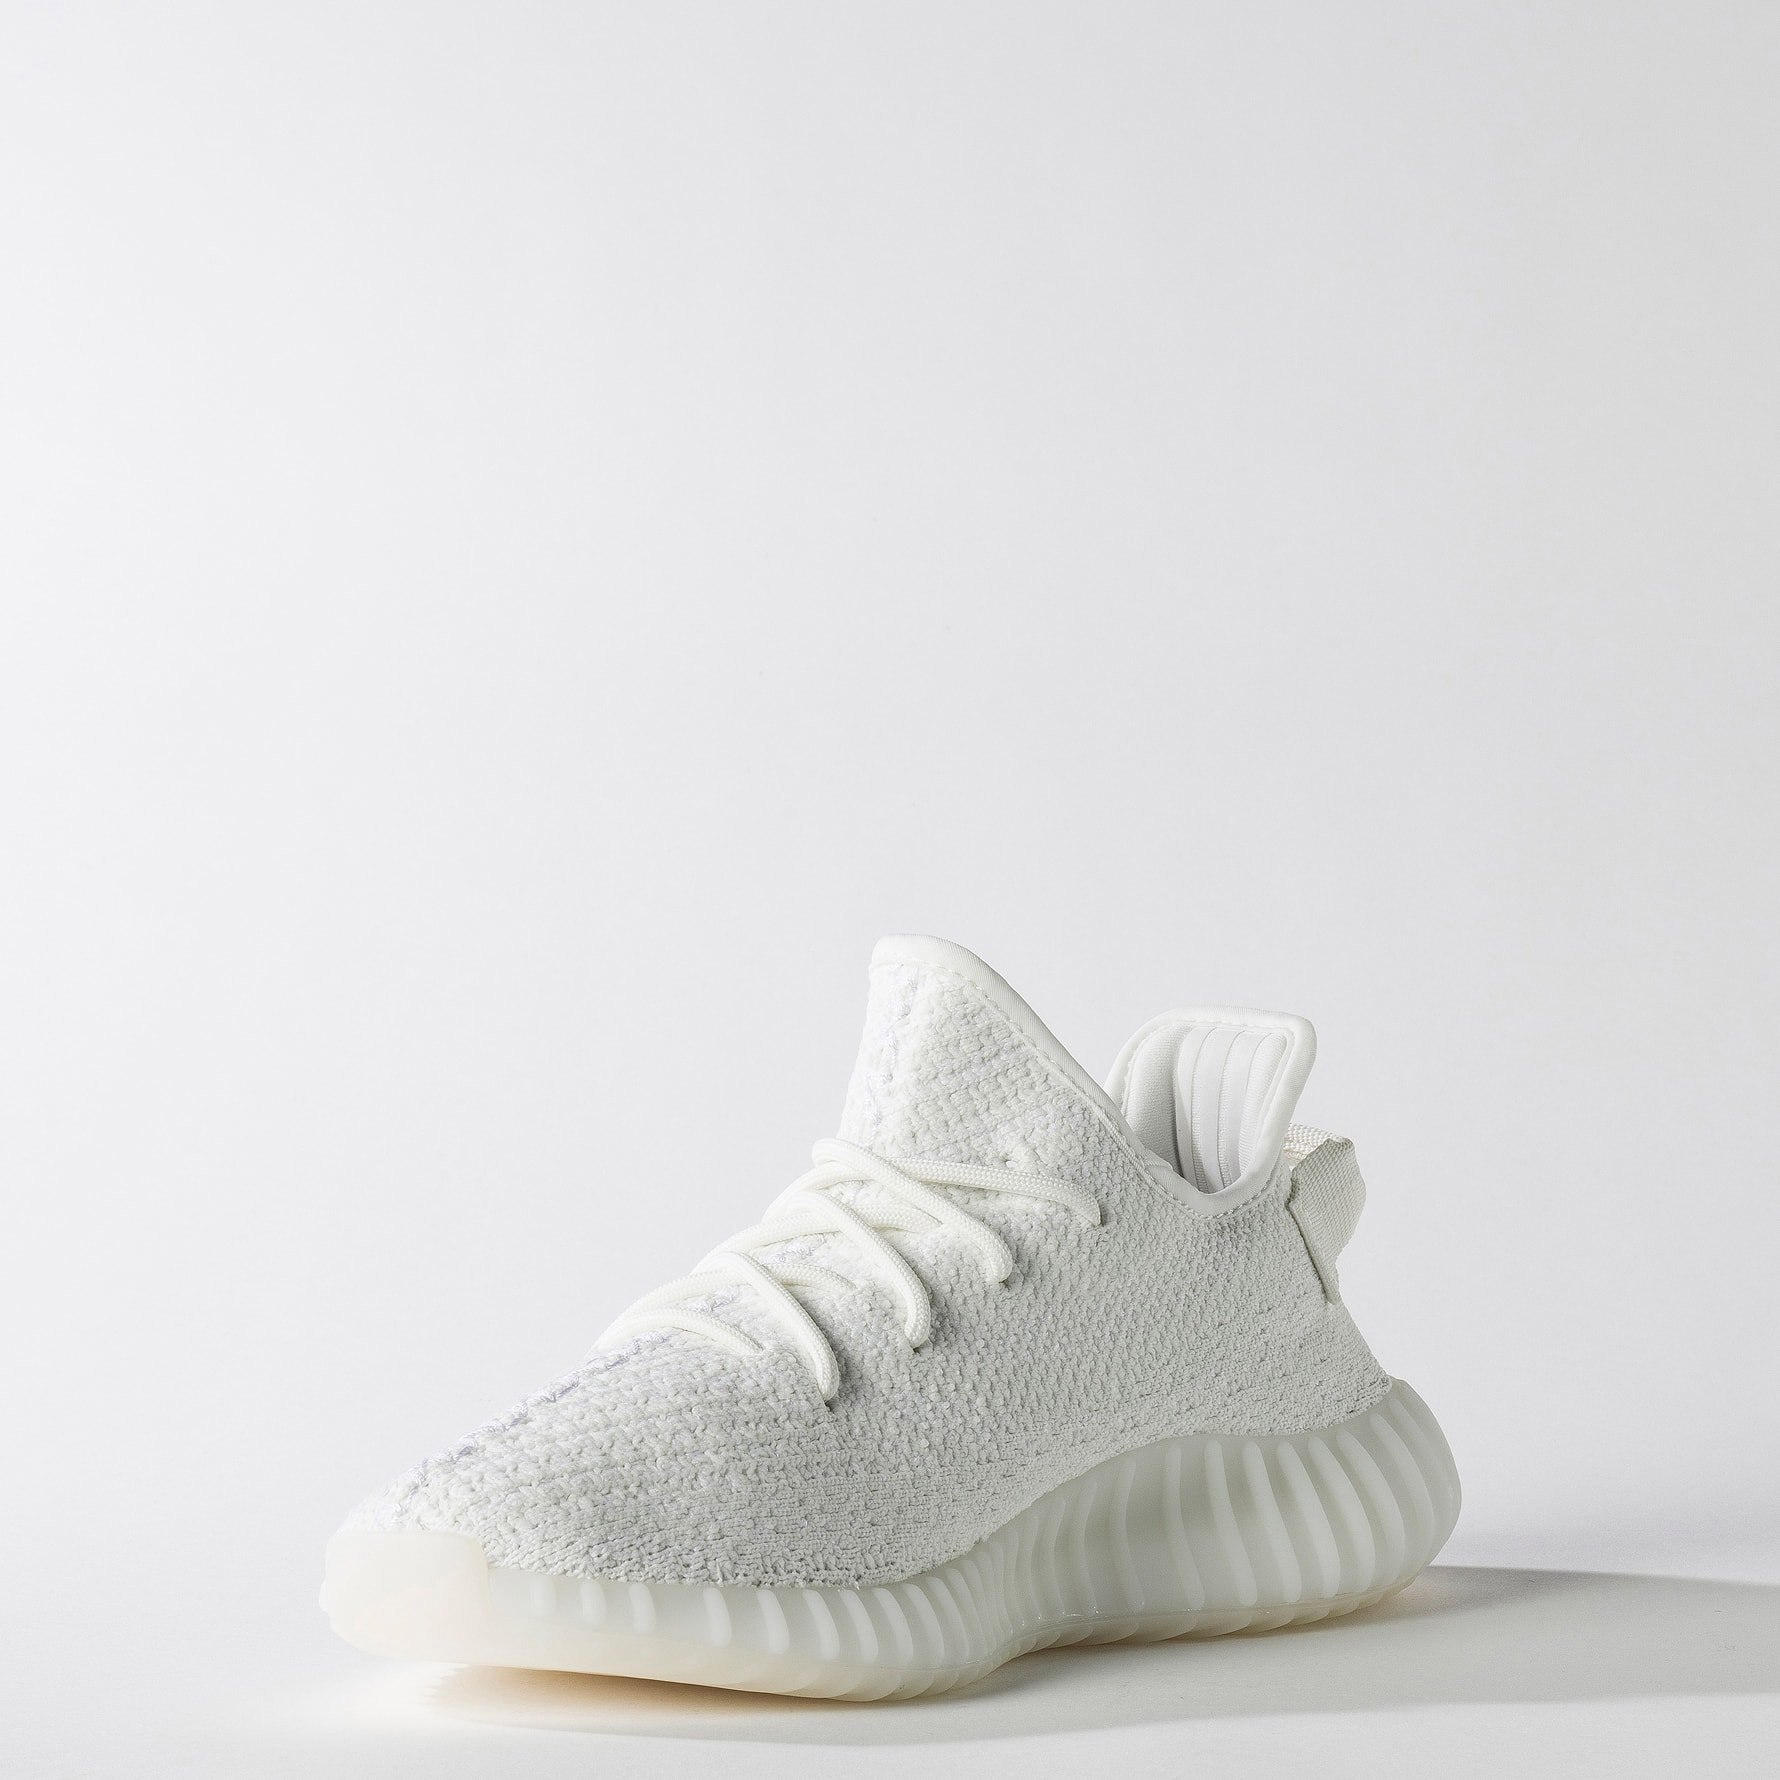 adidas Yeezy Boost 350 V2 Cream White CP9366 3